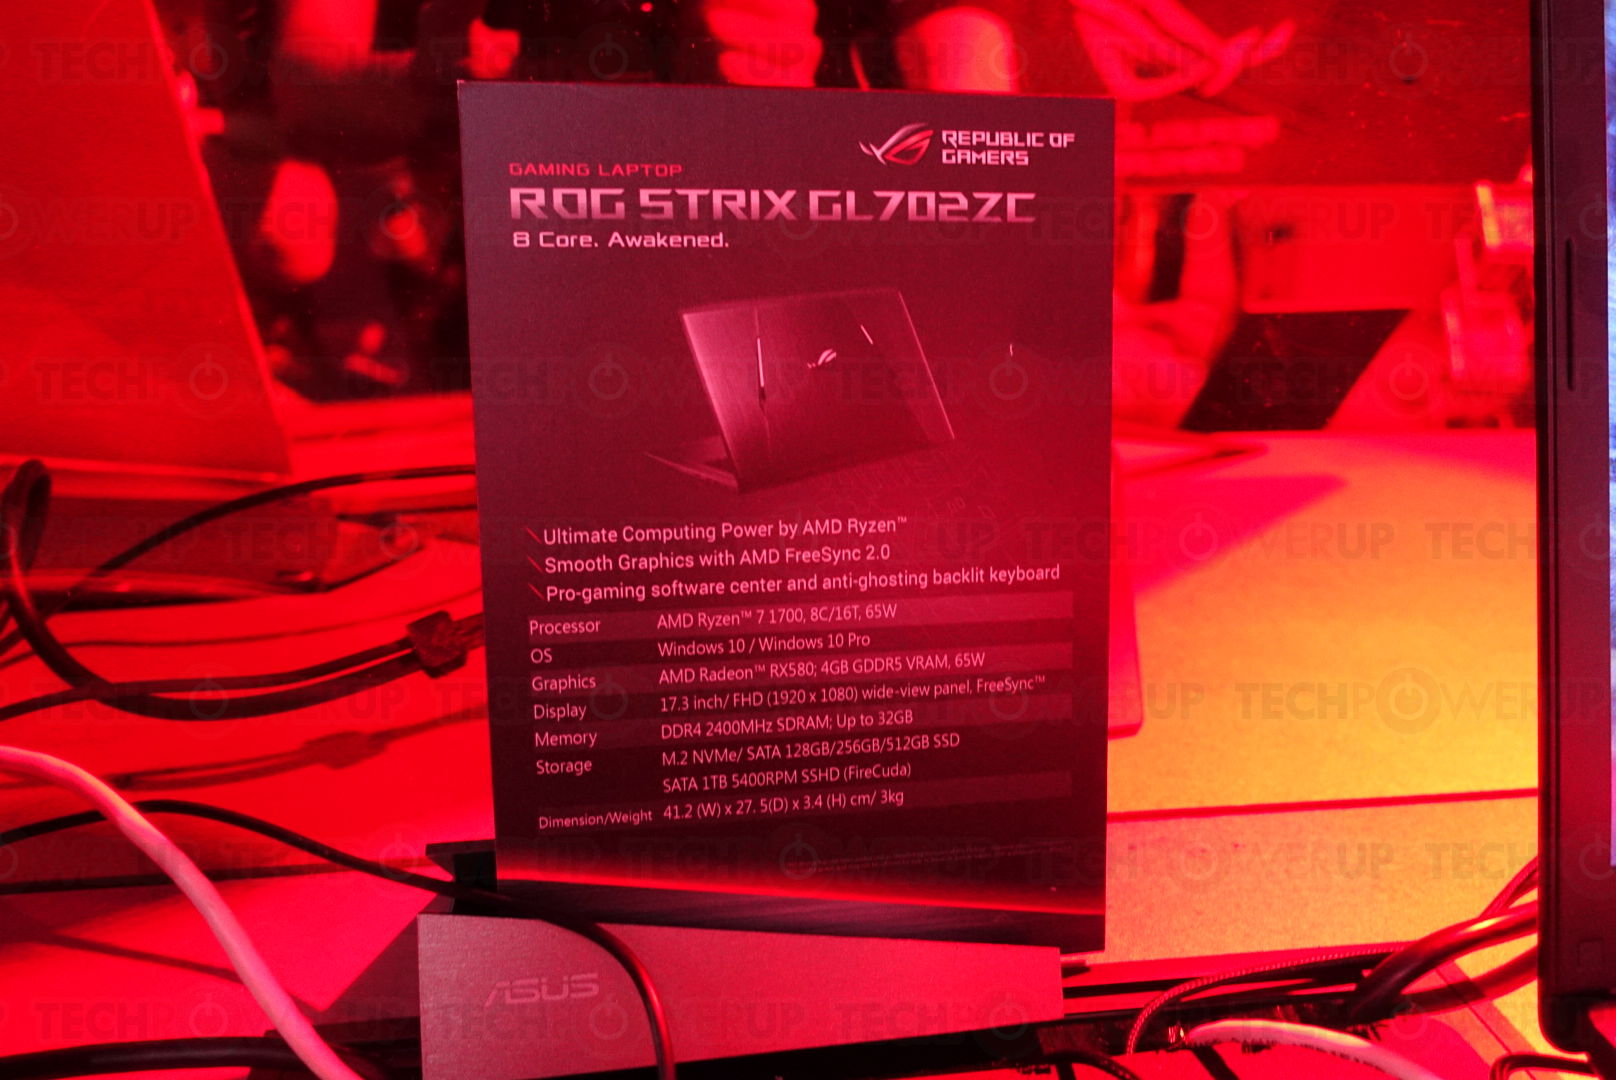 ASUS announce their ROG Strix GL702ZC notebook with an 8-core Ryzen 7 CPU